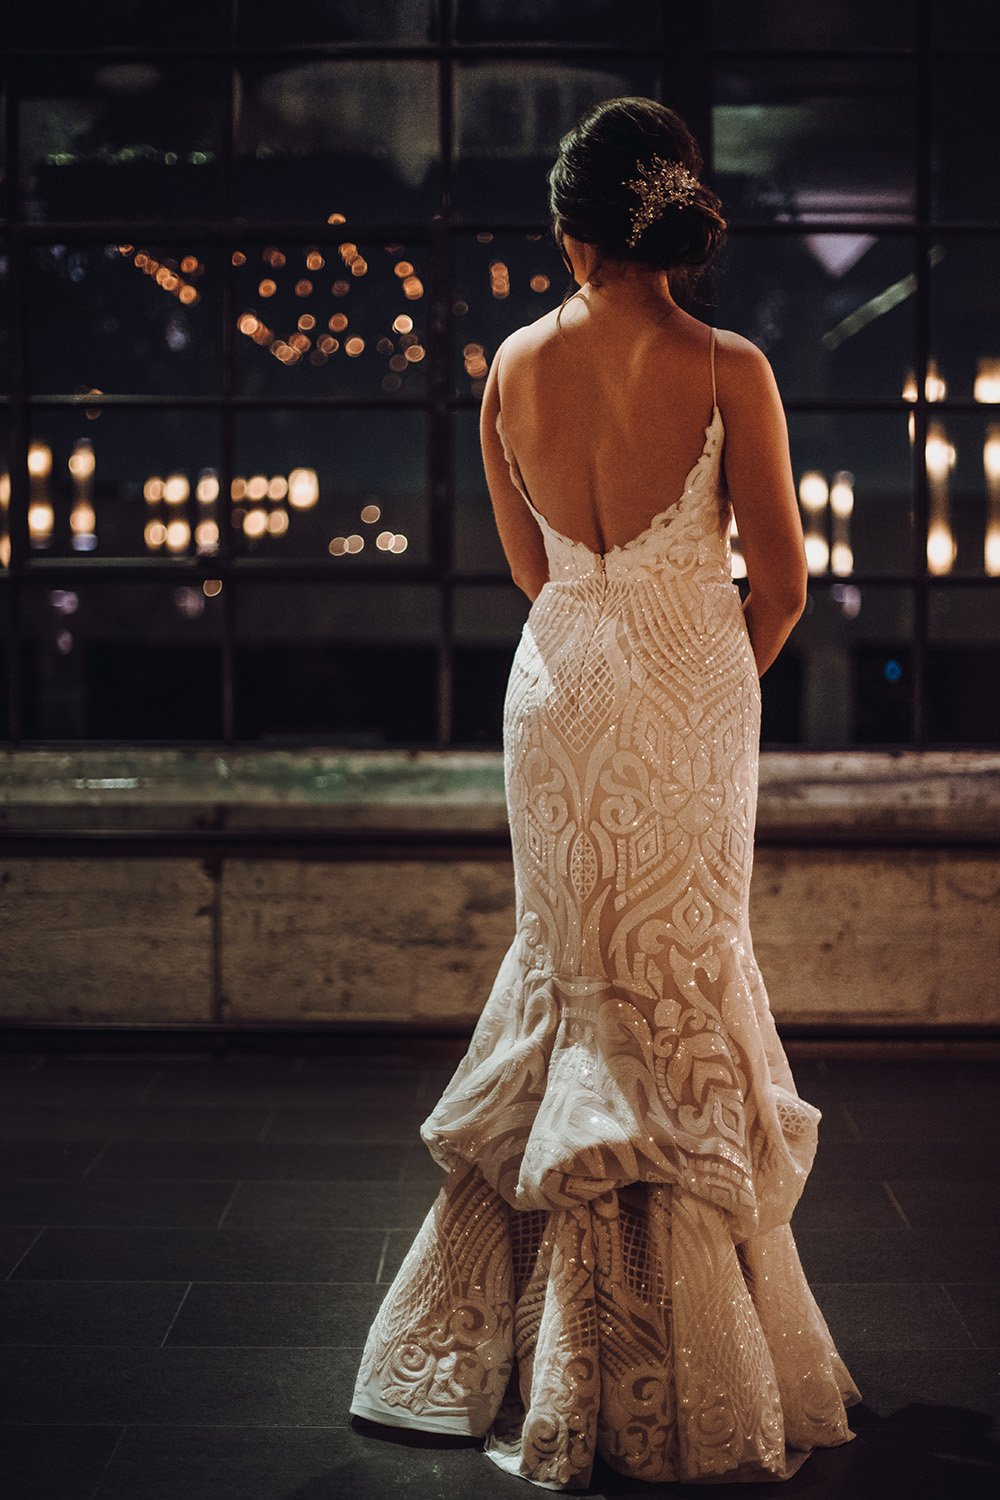 wedding gown details, intricate back